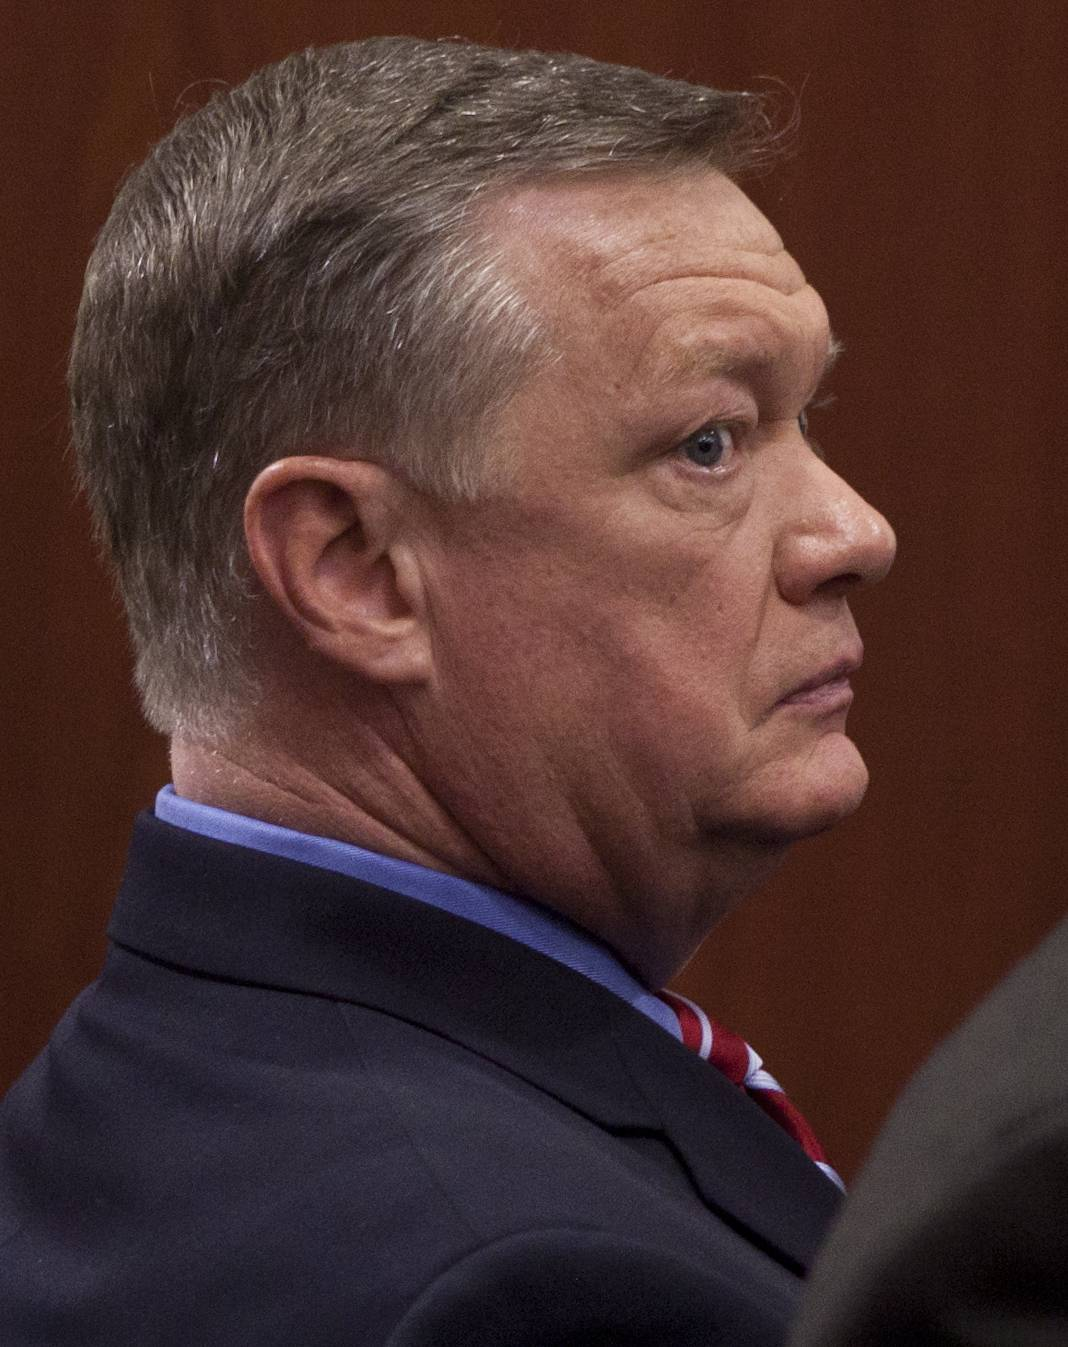 Former Fiesta Bowl CEO John Junker pleaded guilty in 2012 to a federal conspiracy charge after being accused of being involved in the scheme in which bowl employees made illegal campaign contributions to politicians and were reimbursed by the nonprofit bowl. Junker faces sentencing Thursday March 13, 2014 in federal court.